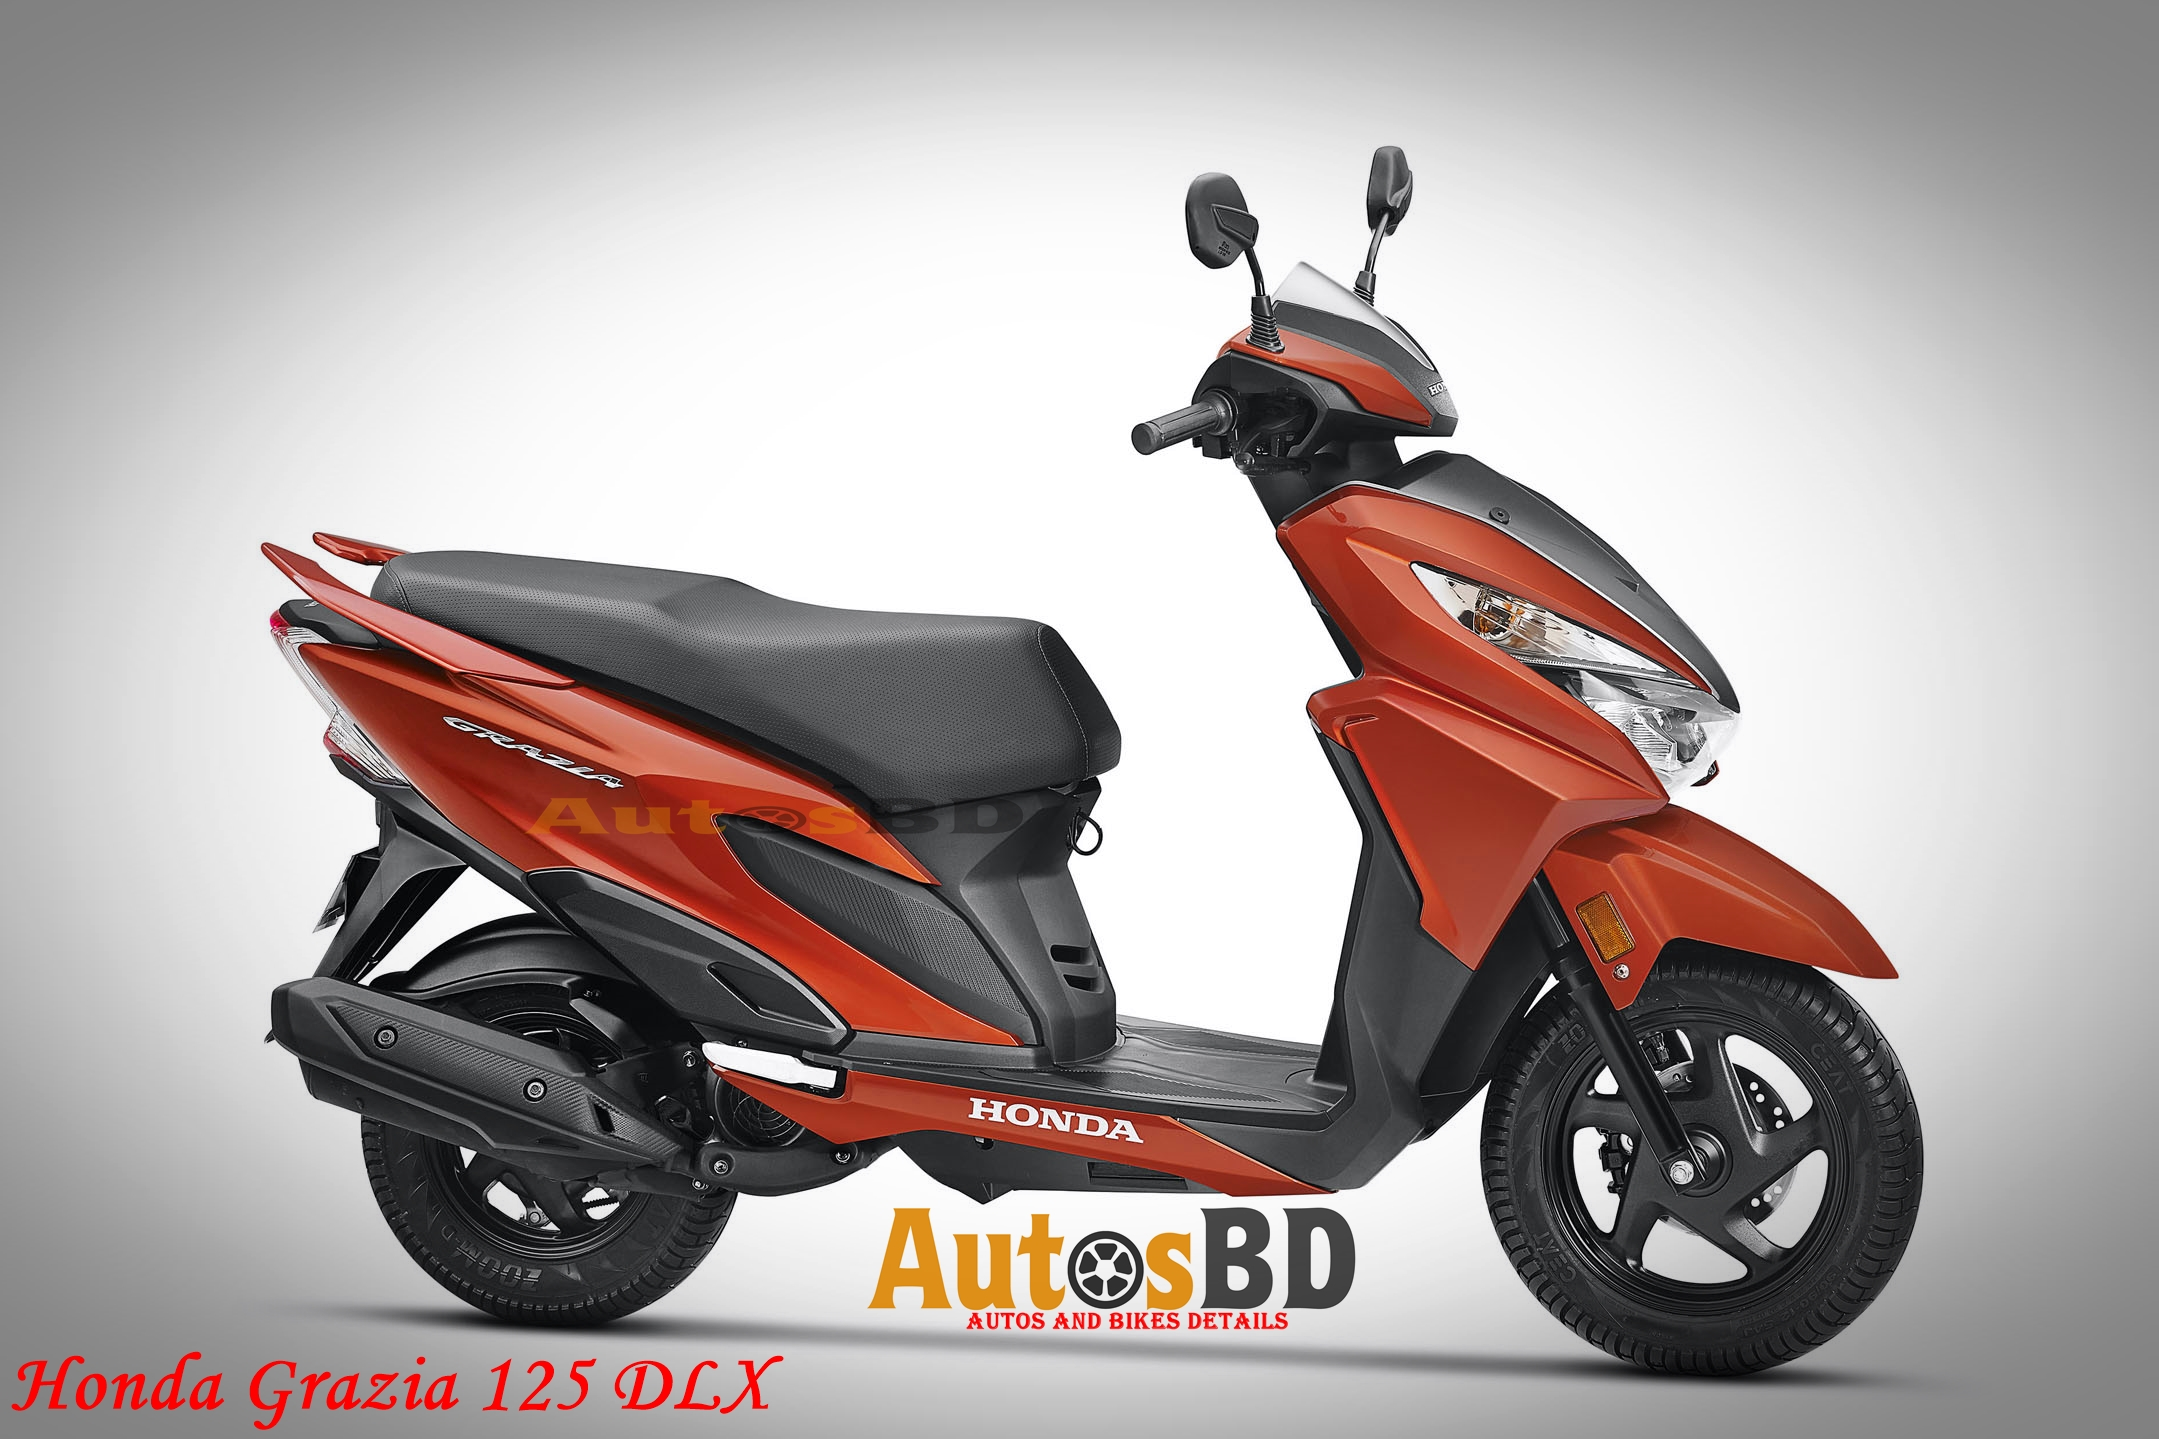 Honda Grazia 125 DLX Motorcycle Price in India